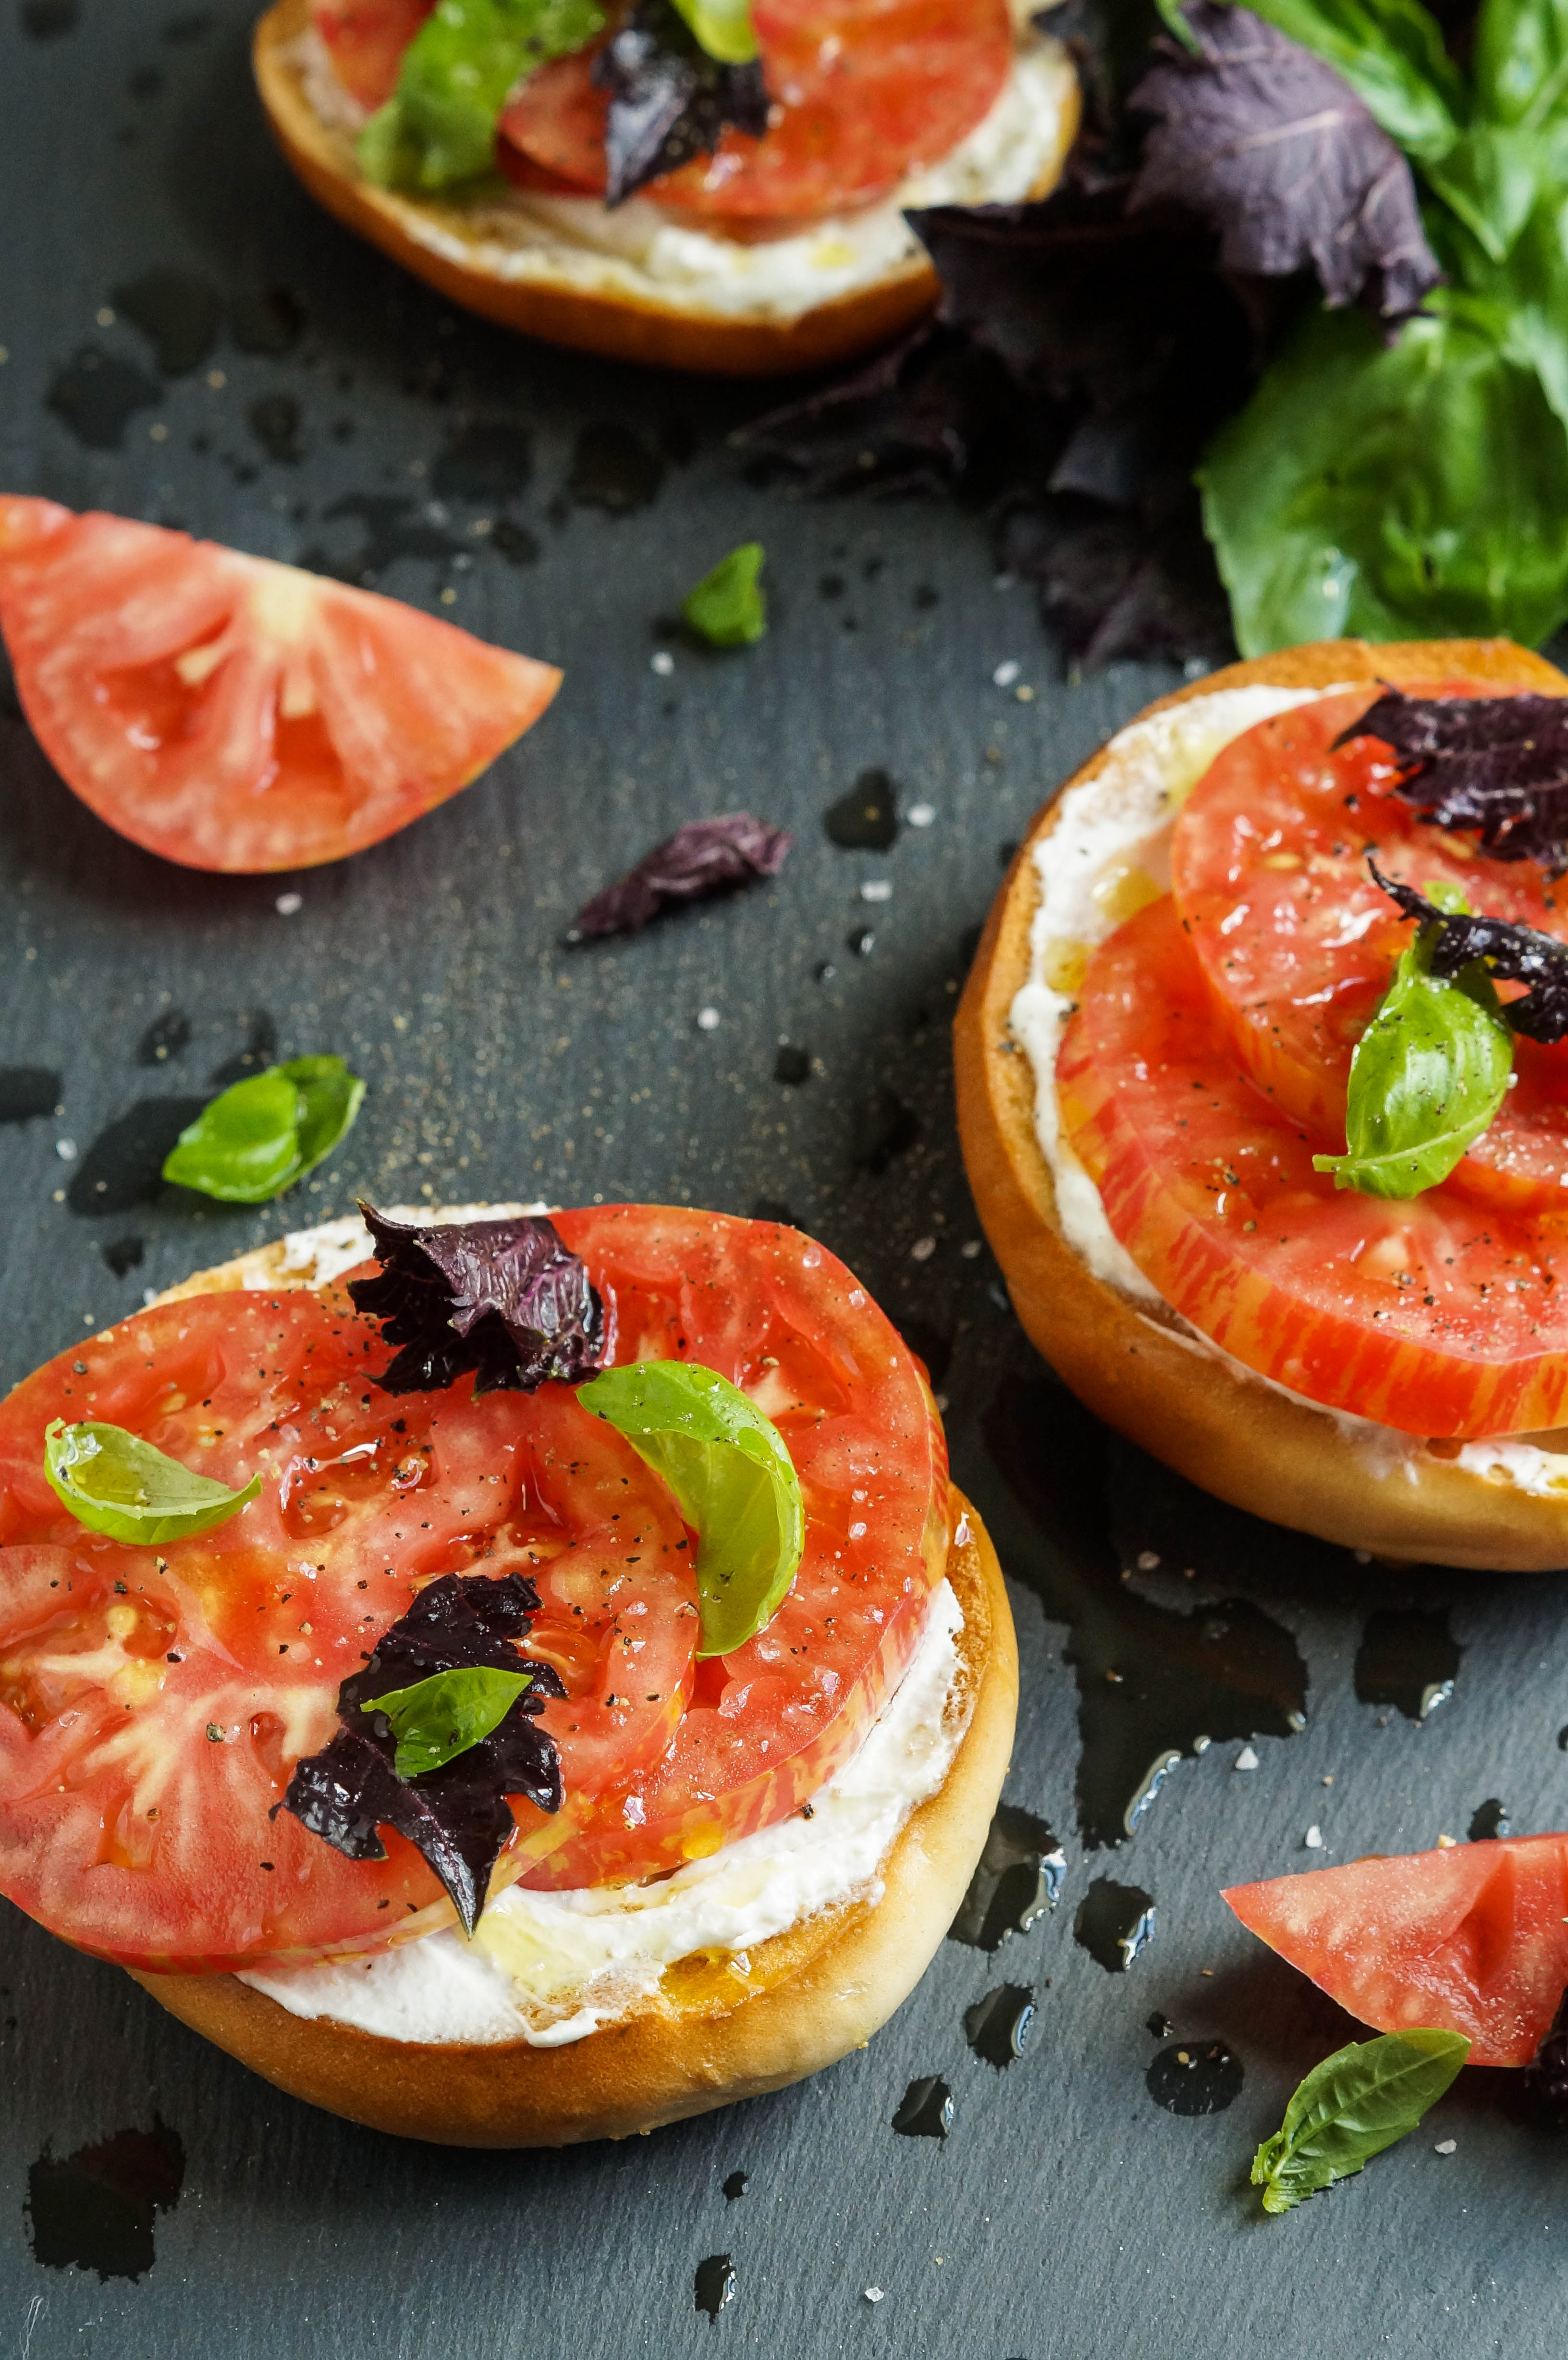 Crisp Toasted Bagel with Fromage Blanc, Tomato, Seas Salt, and Basil (3 of 3)